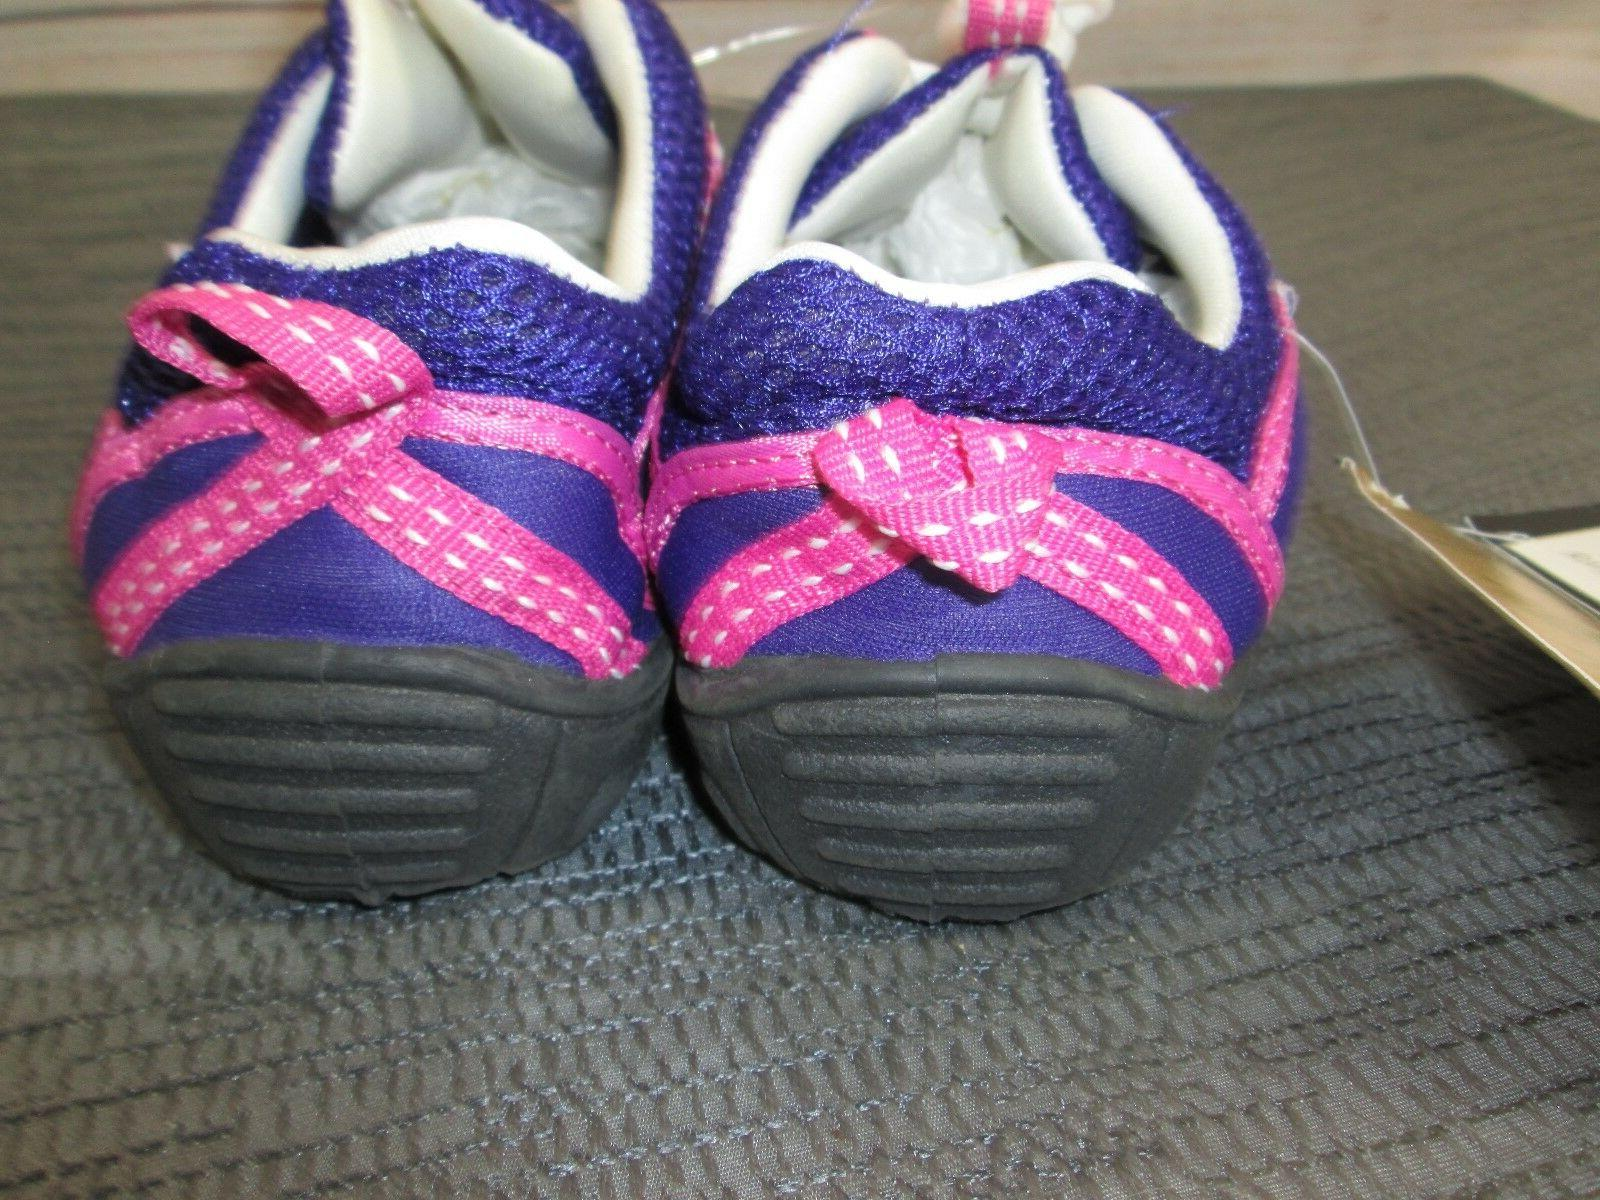 NEW Northside Water Girl's Pink Purple Sandals Shoes